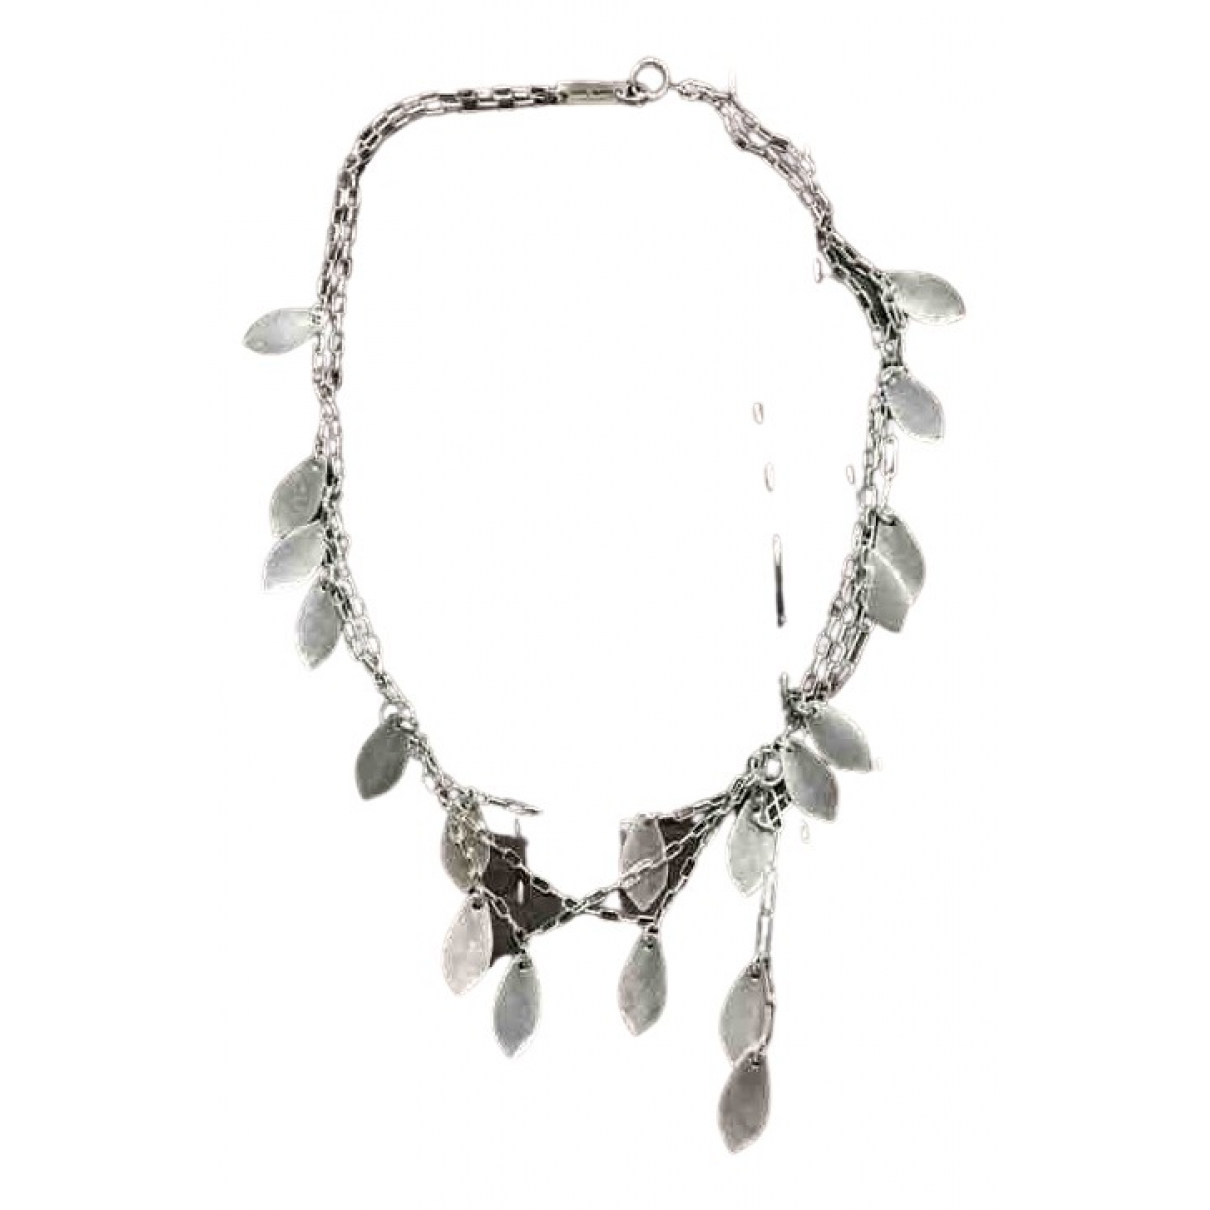 Isabel Marant N Silver Metal necklace for Women N